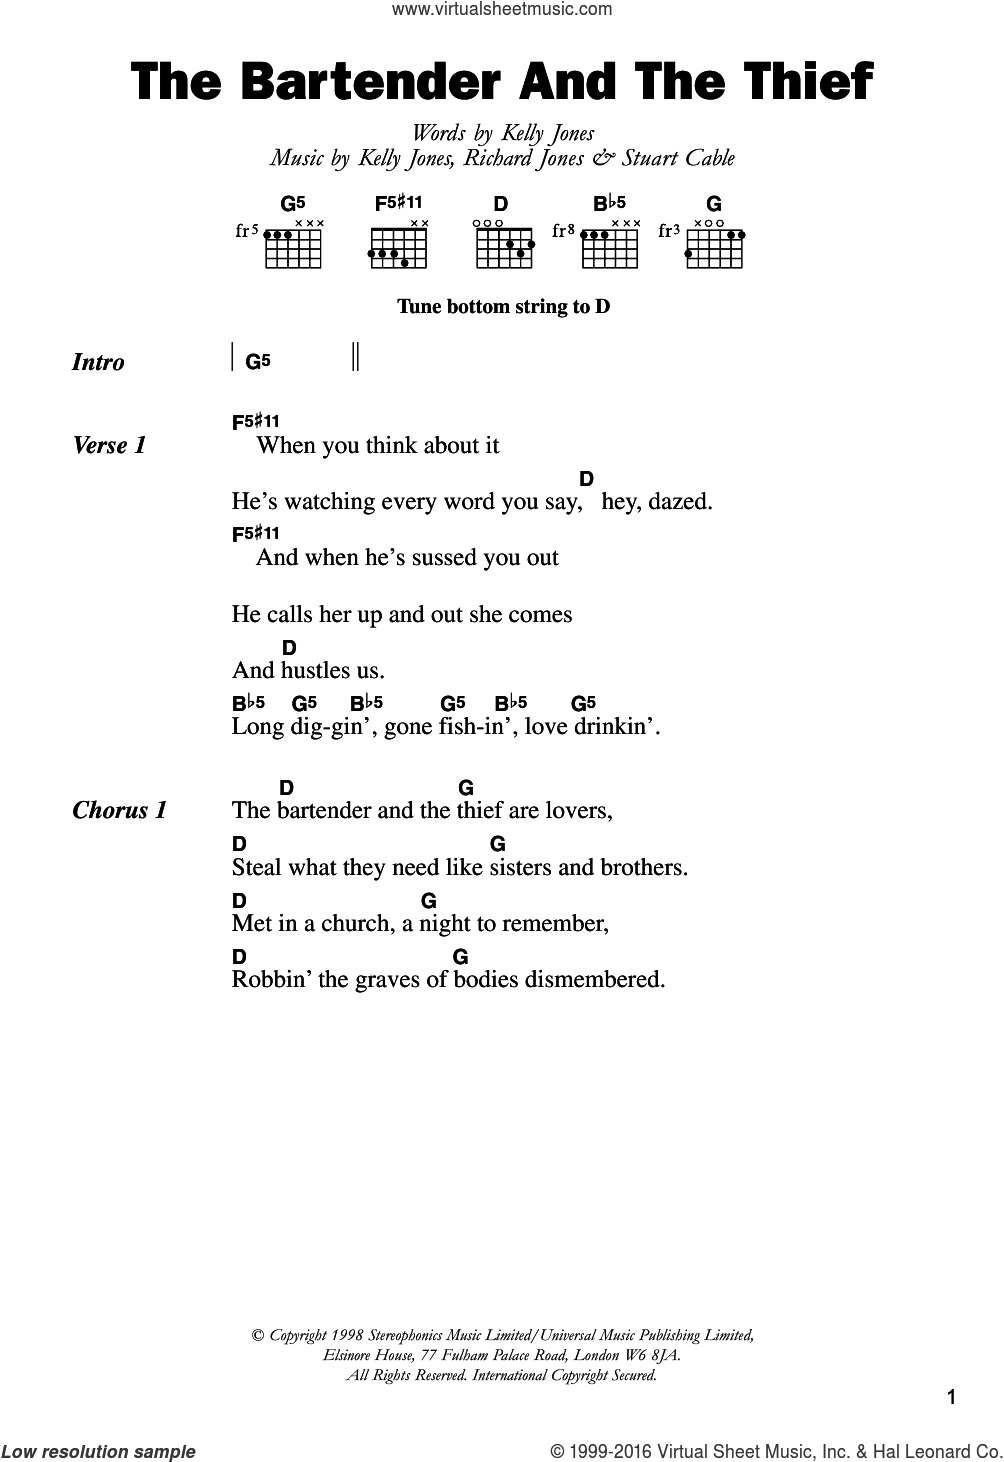 The Bartender And The Thief sheet music for guitar (chords) by Stereophonics, Kelly Jones, Richard Jones and Stuart Cable, intermediate